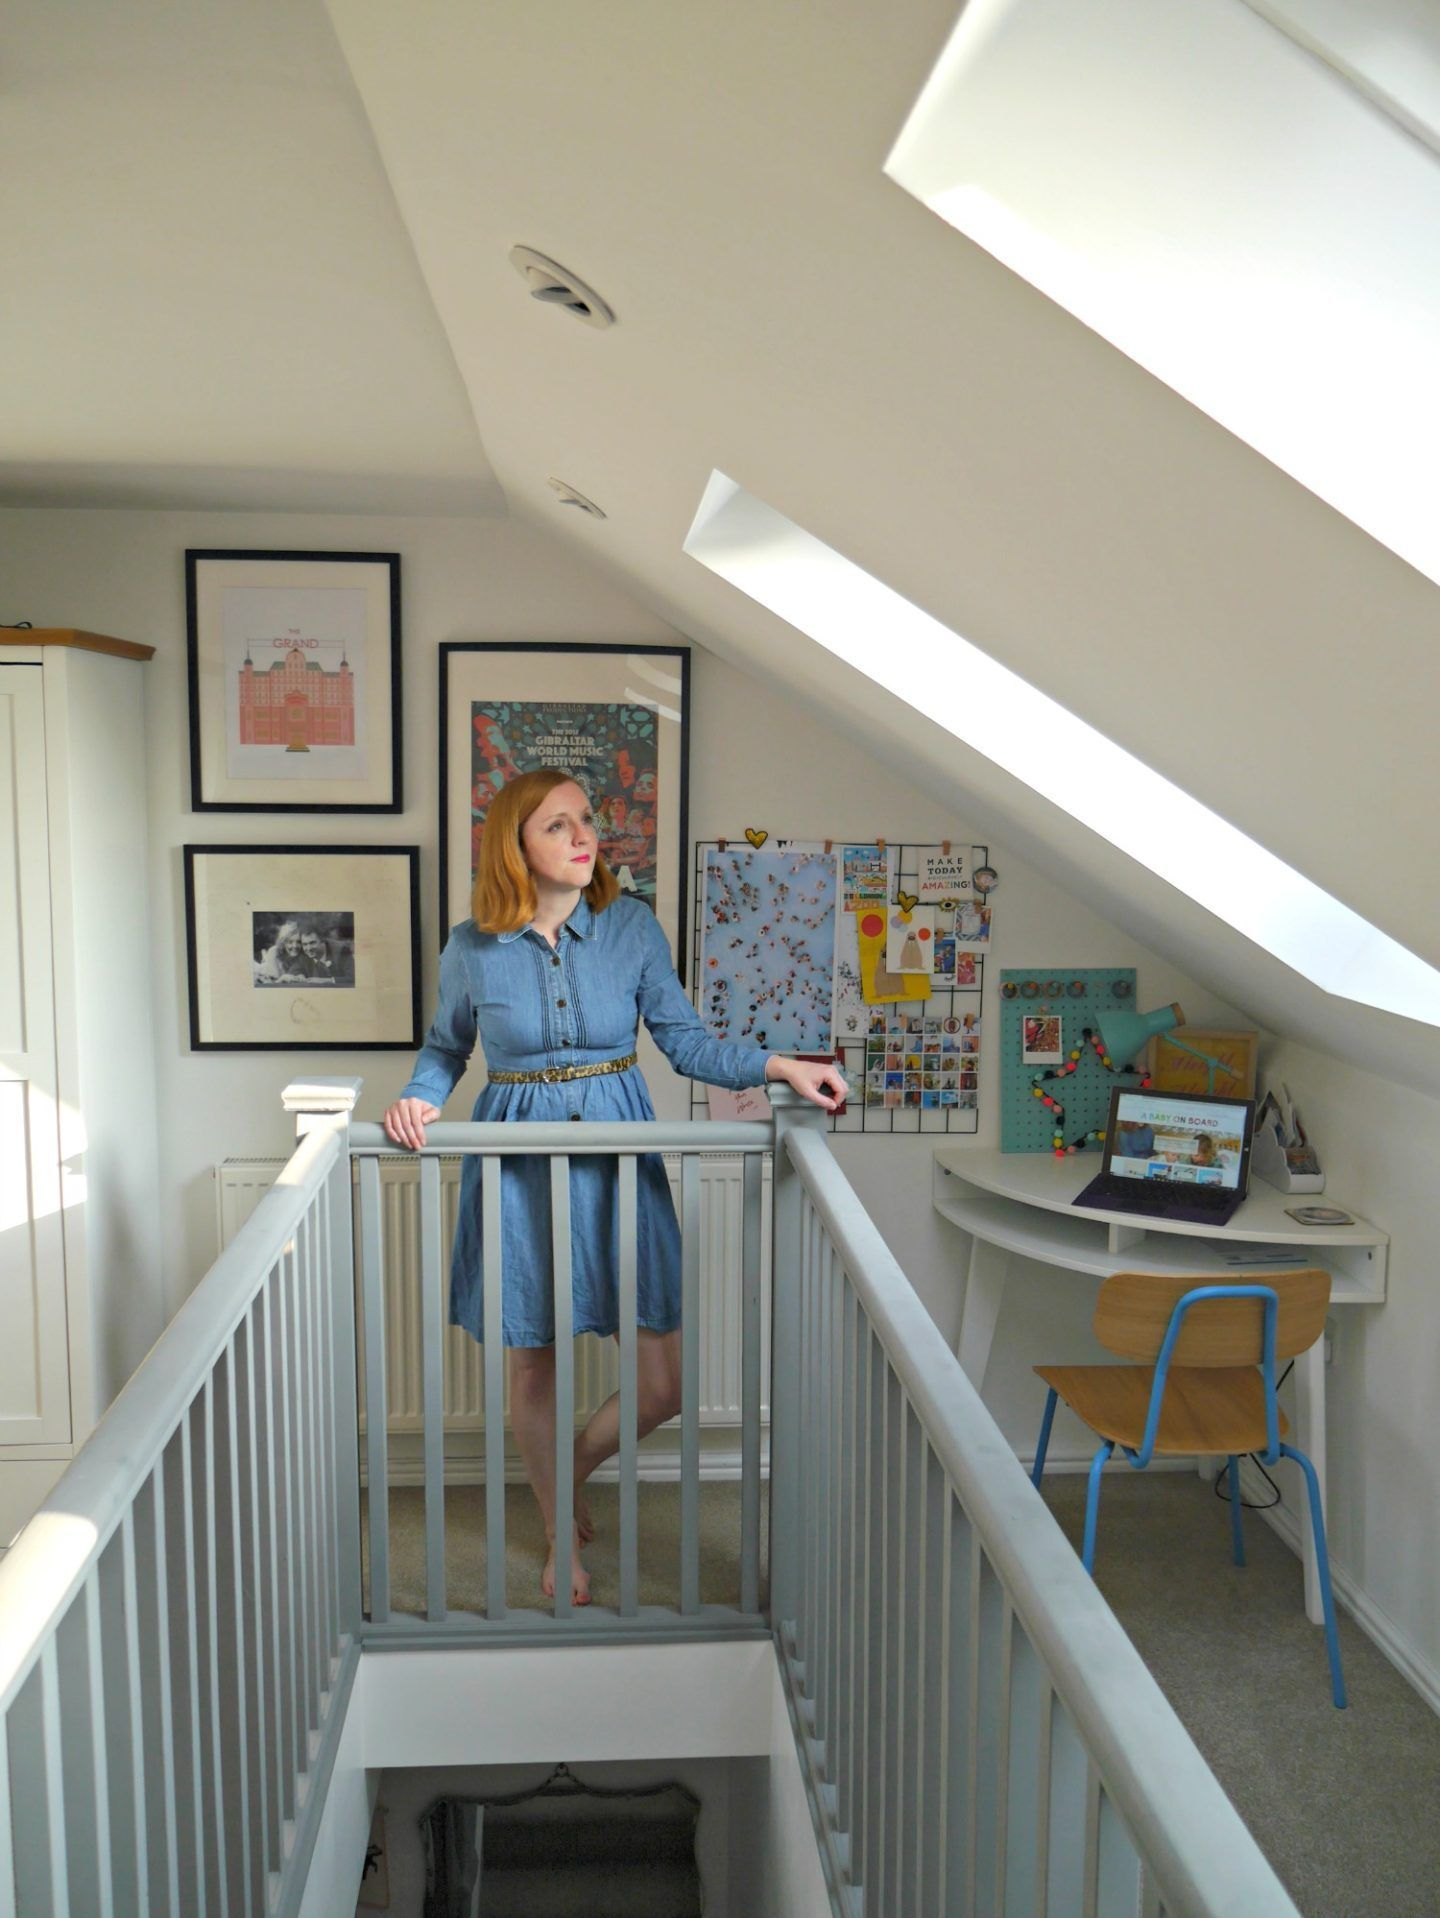 Loft Conversion Tips How A Loft Conversion With Velux Transformed Our Family Home A Baby On Board Blog In 2020 Loft Conversion Tips Loft Room Loft Conversion Plans